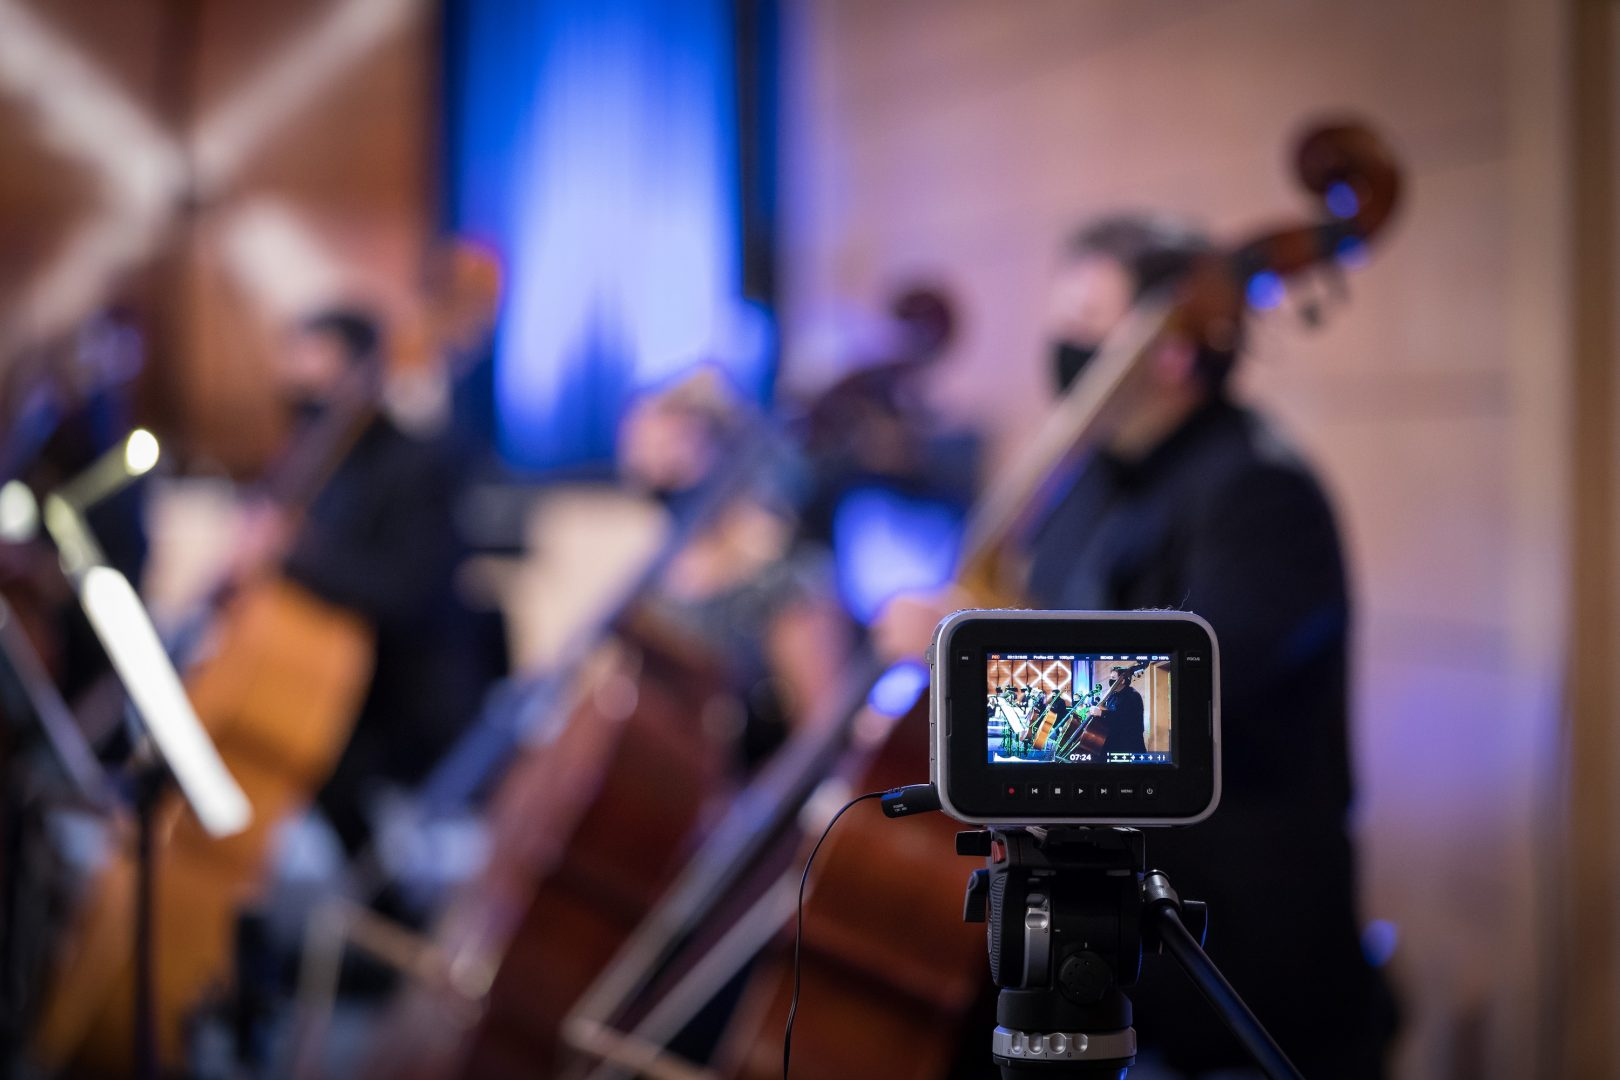 The main photo used for the malta philharmonic orchestra's online events